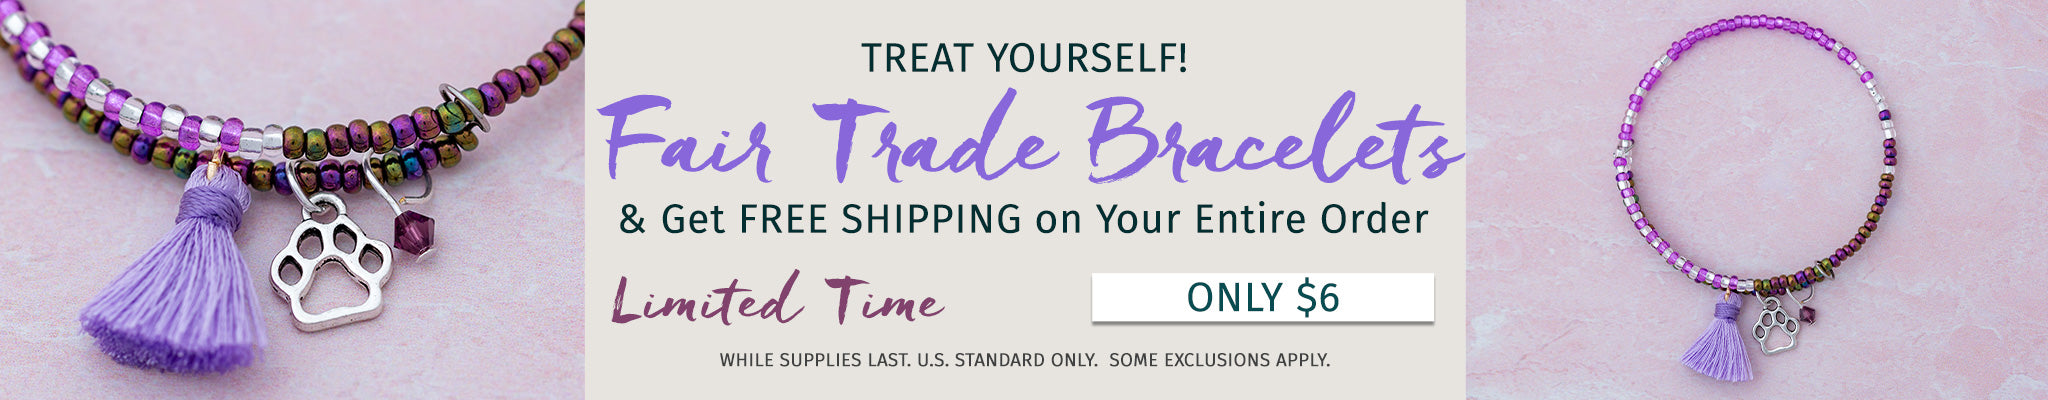 Fair Trade Bracelets! | Only $6 | New!